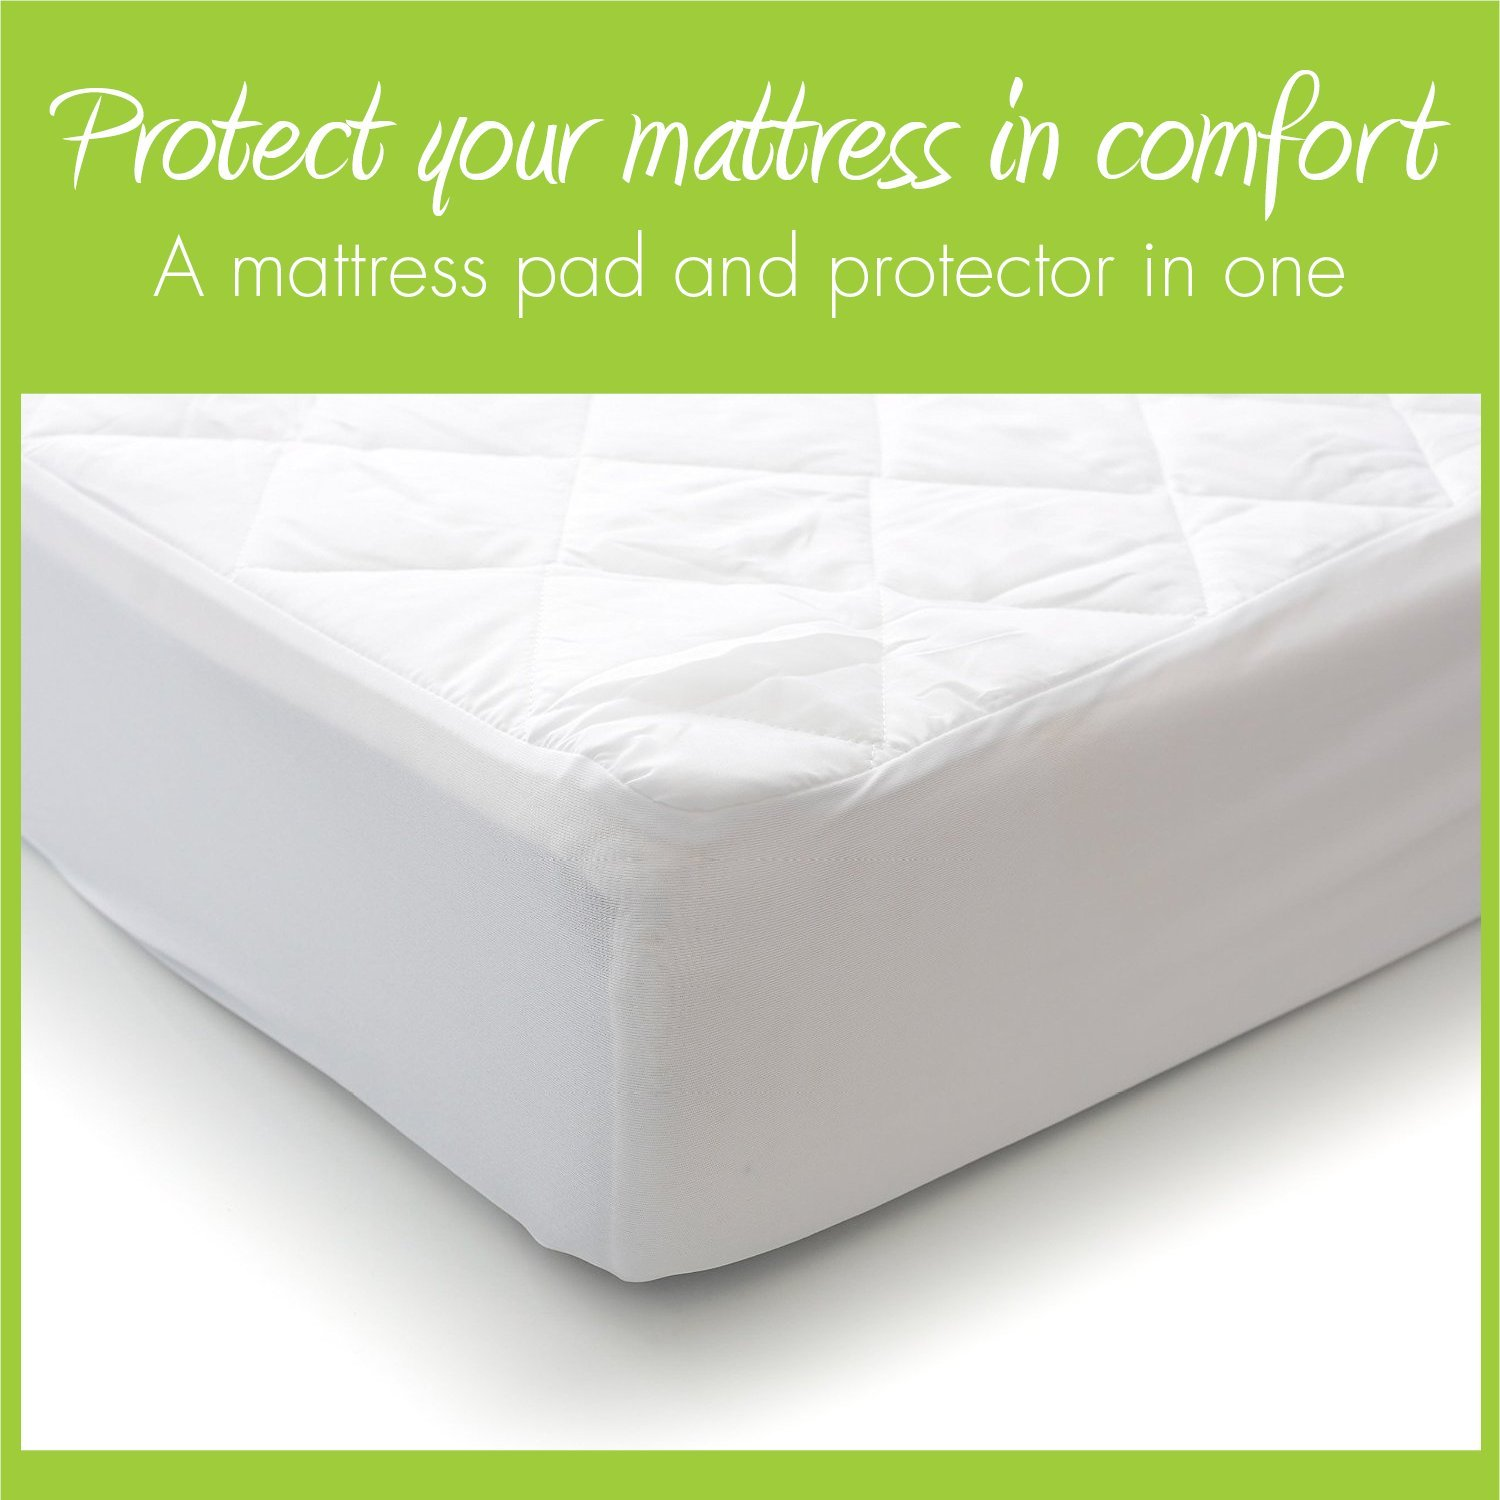 MILLIARD Quilted, Waterproof Crib & Toddler Mattress Protector Pad, Premium Hypoallergenic Fitted Cover with Extra Padding 28x52x6 by Milliard (Image #2)